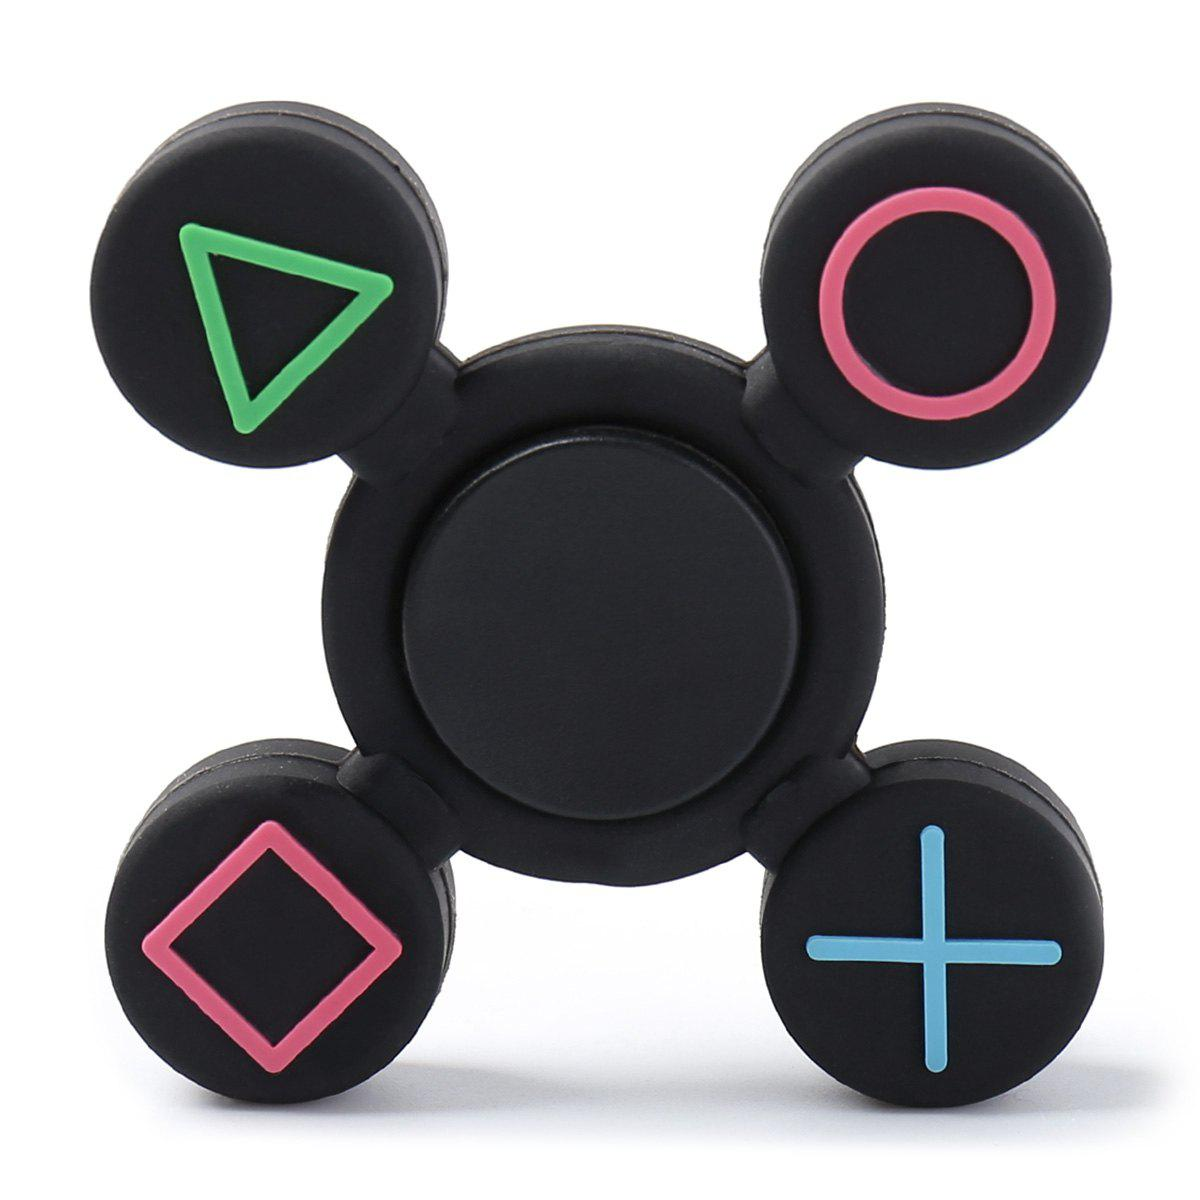 Play Station Pattern Fidget EDC Finger SpinnerHOME<br><br>Size: 7*7*1.2CM; Color: BLACK; Products Type: Fidget Spinner; Theme: Funny; Frame material: Plastic; Features: Creative Toy; Shape/Pattern: Games Controller; Swing Numbers: Quad Bar; Weight: 0.0350kg; Package Contents: 1 x Fidget Spinner;